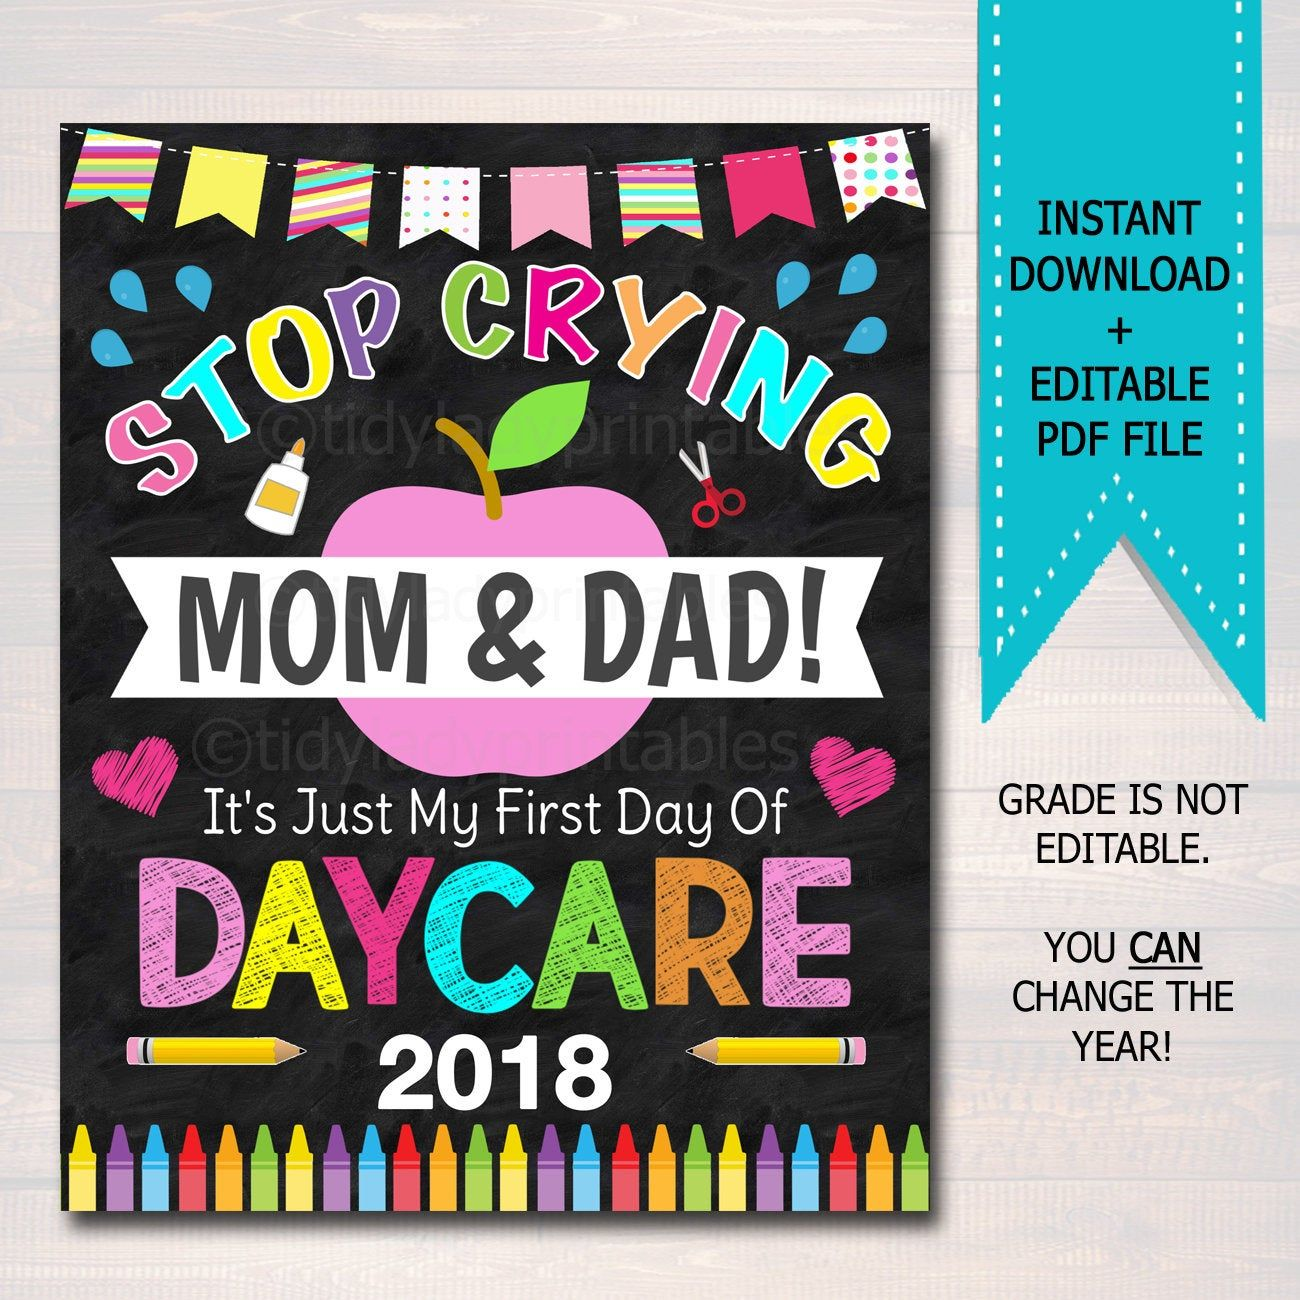 Stop Crying Mom & Dad Back To School Photo Prop, Daycare